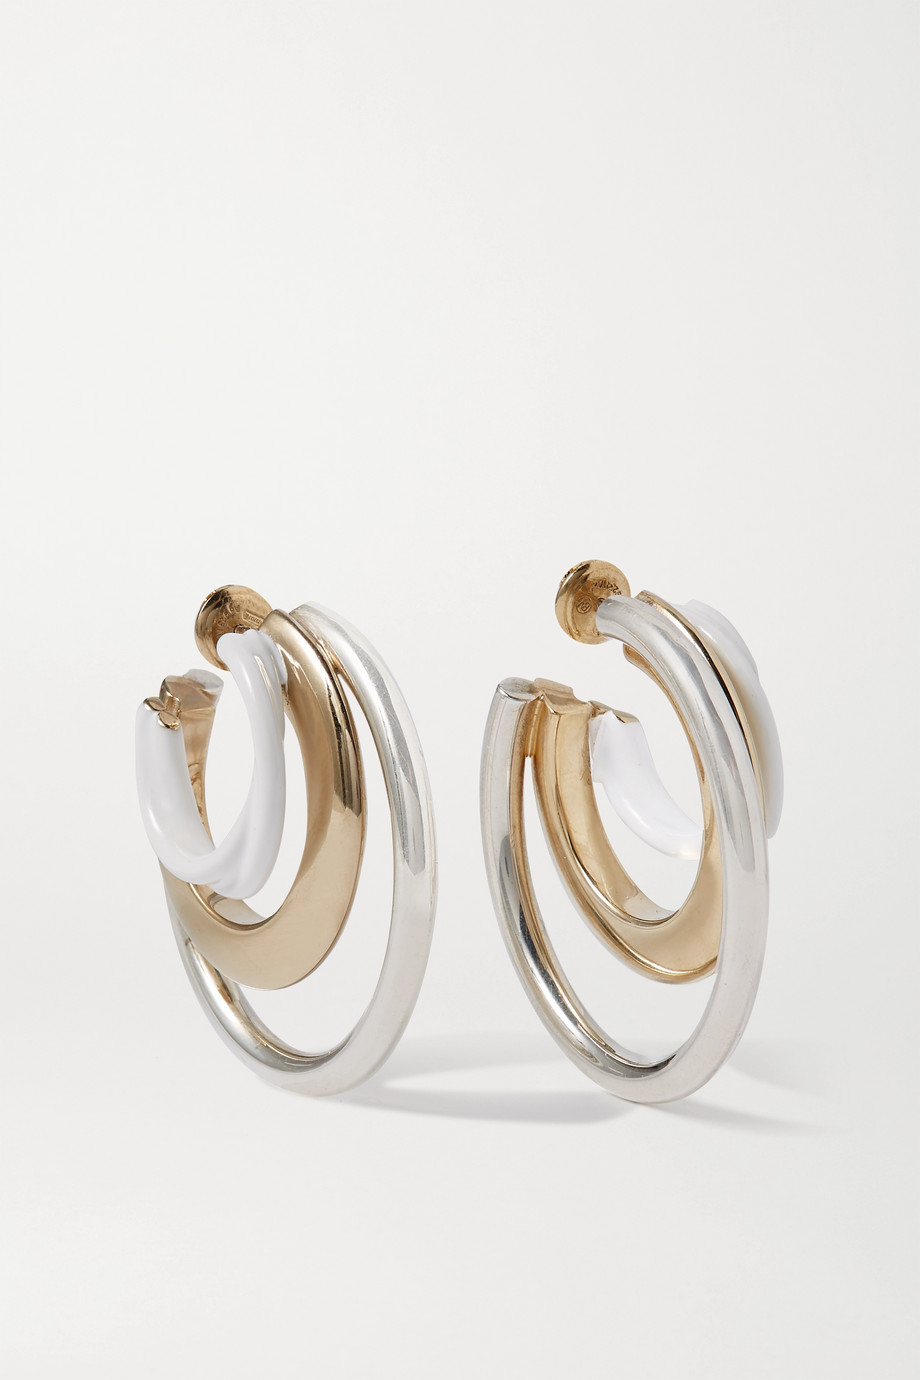 Bottega Veneta Silver and gold-tone and enamel hoop earrings